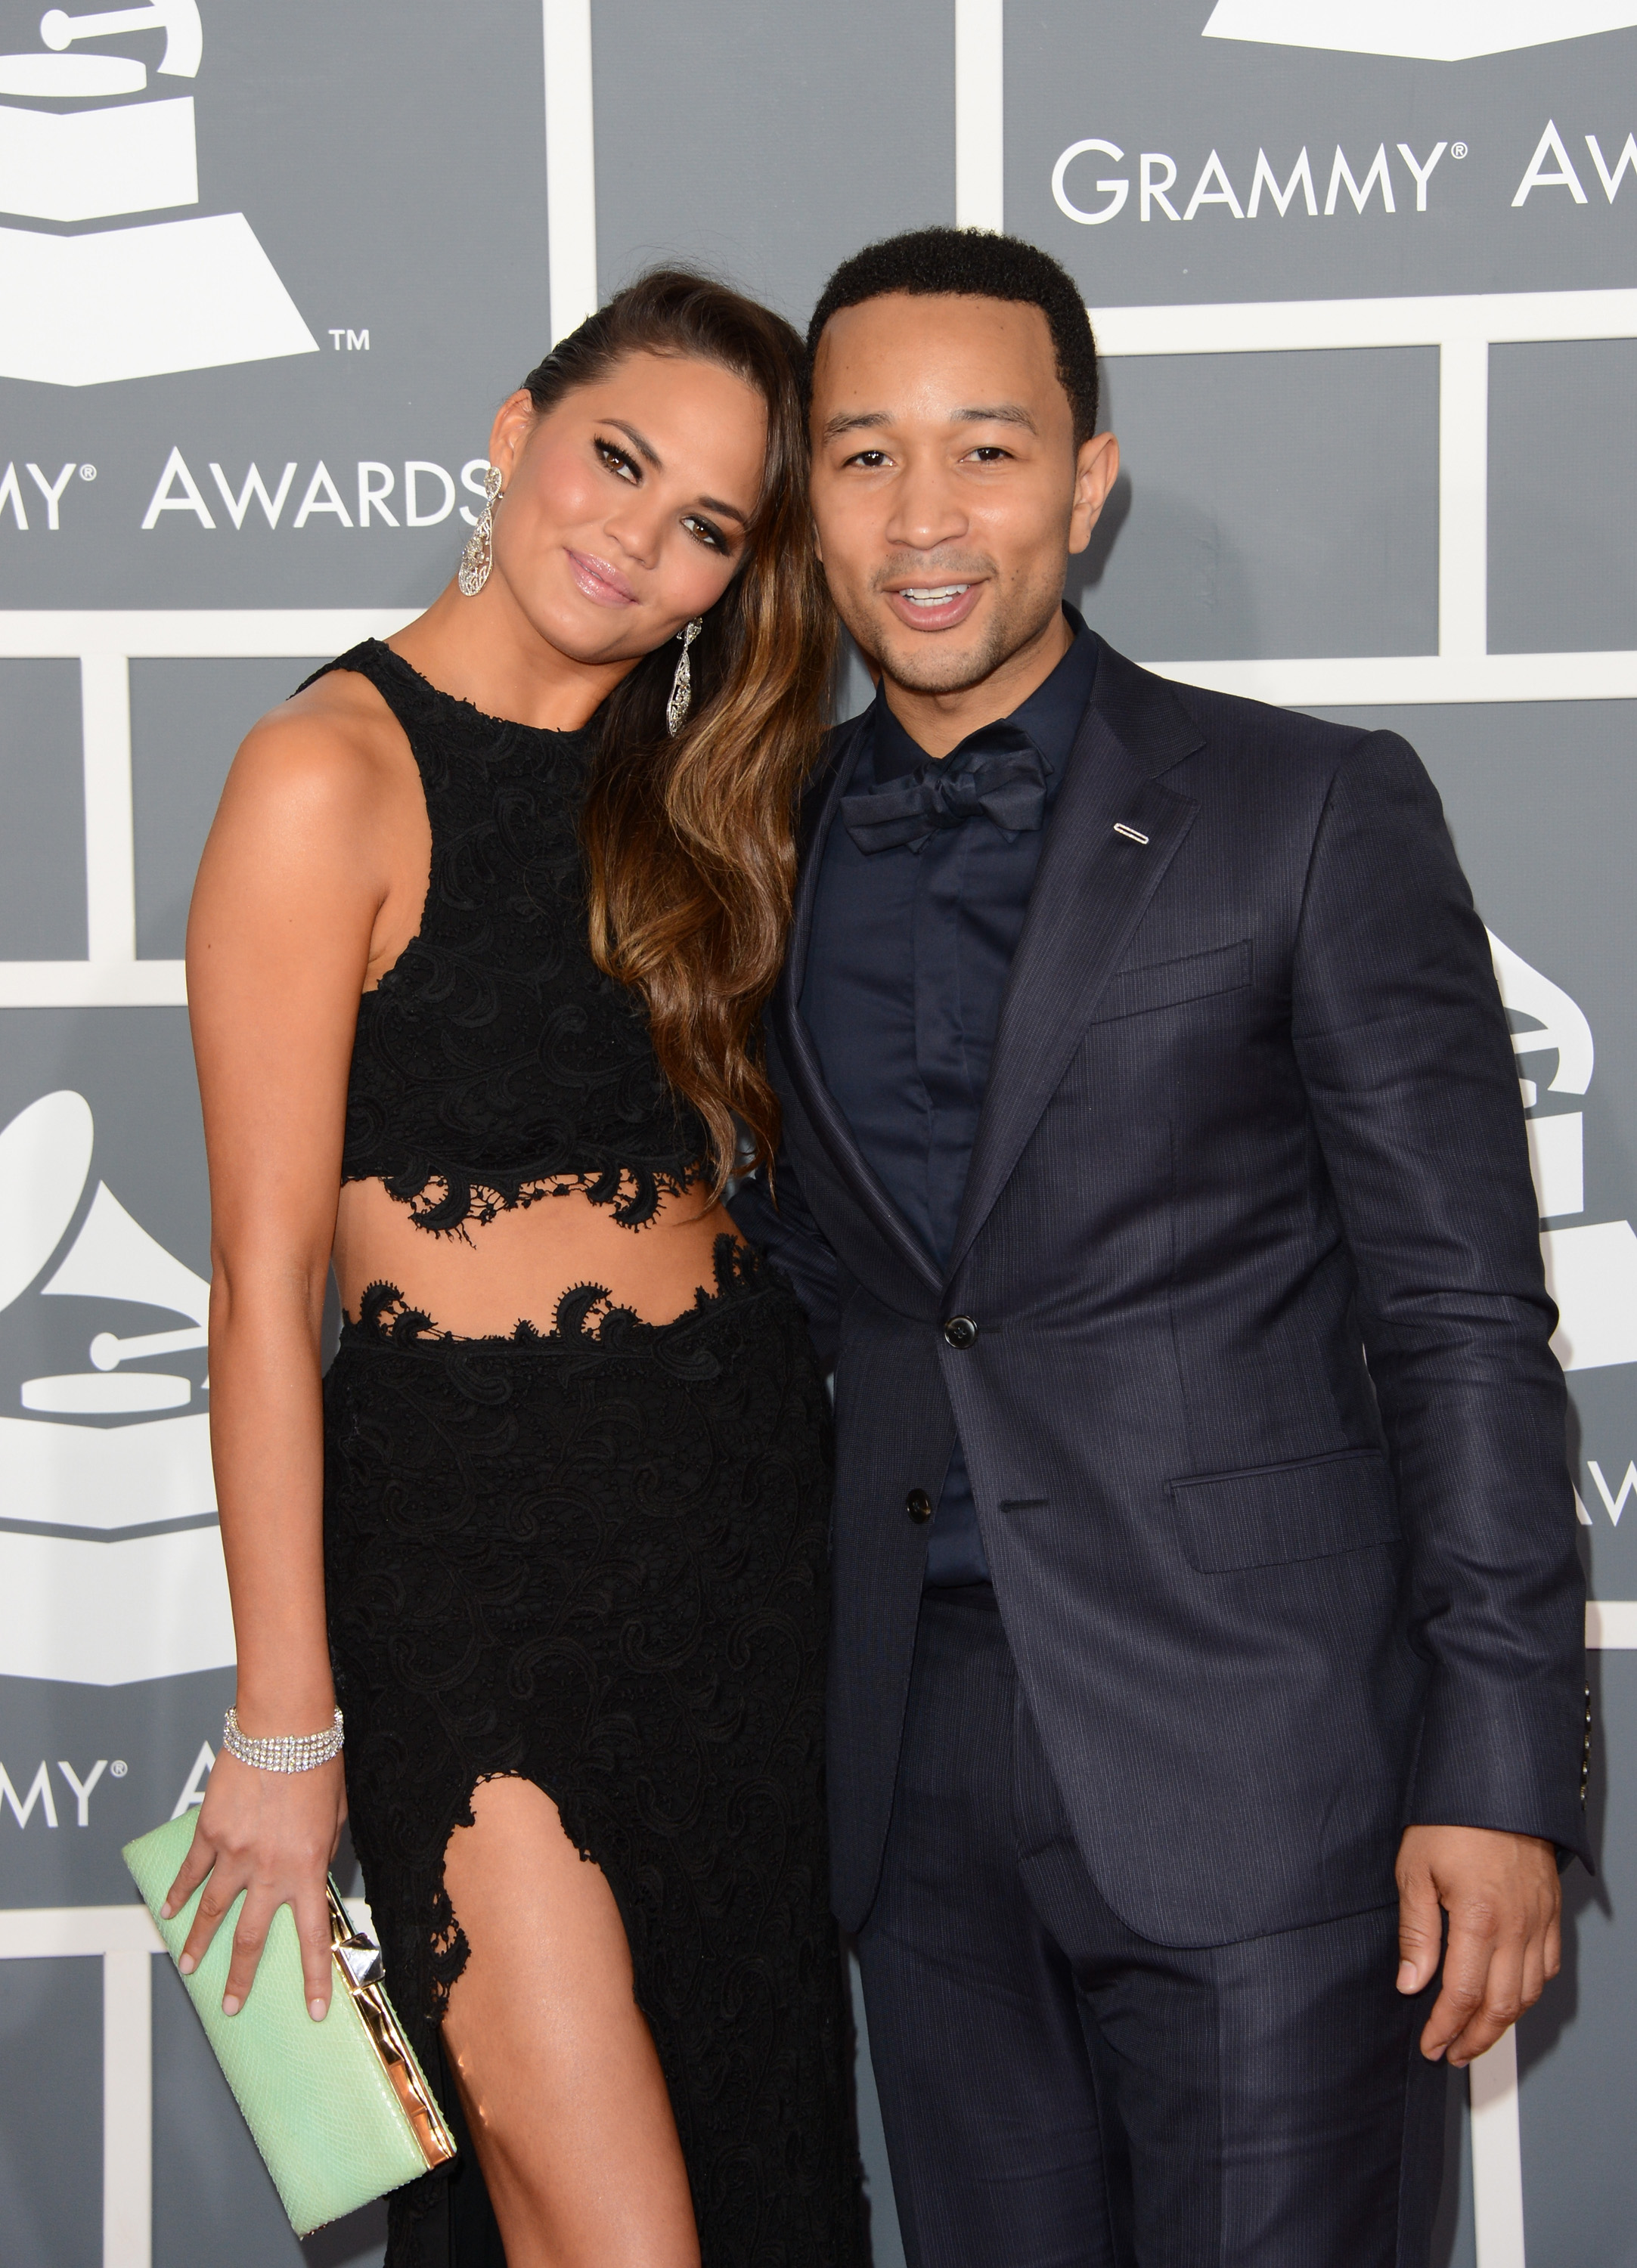 John Legend stepped out with Chrissy Teigen for the Grammy Awards.